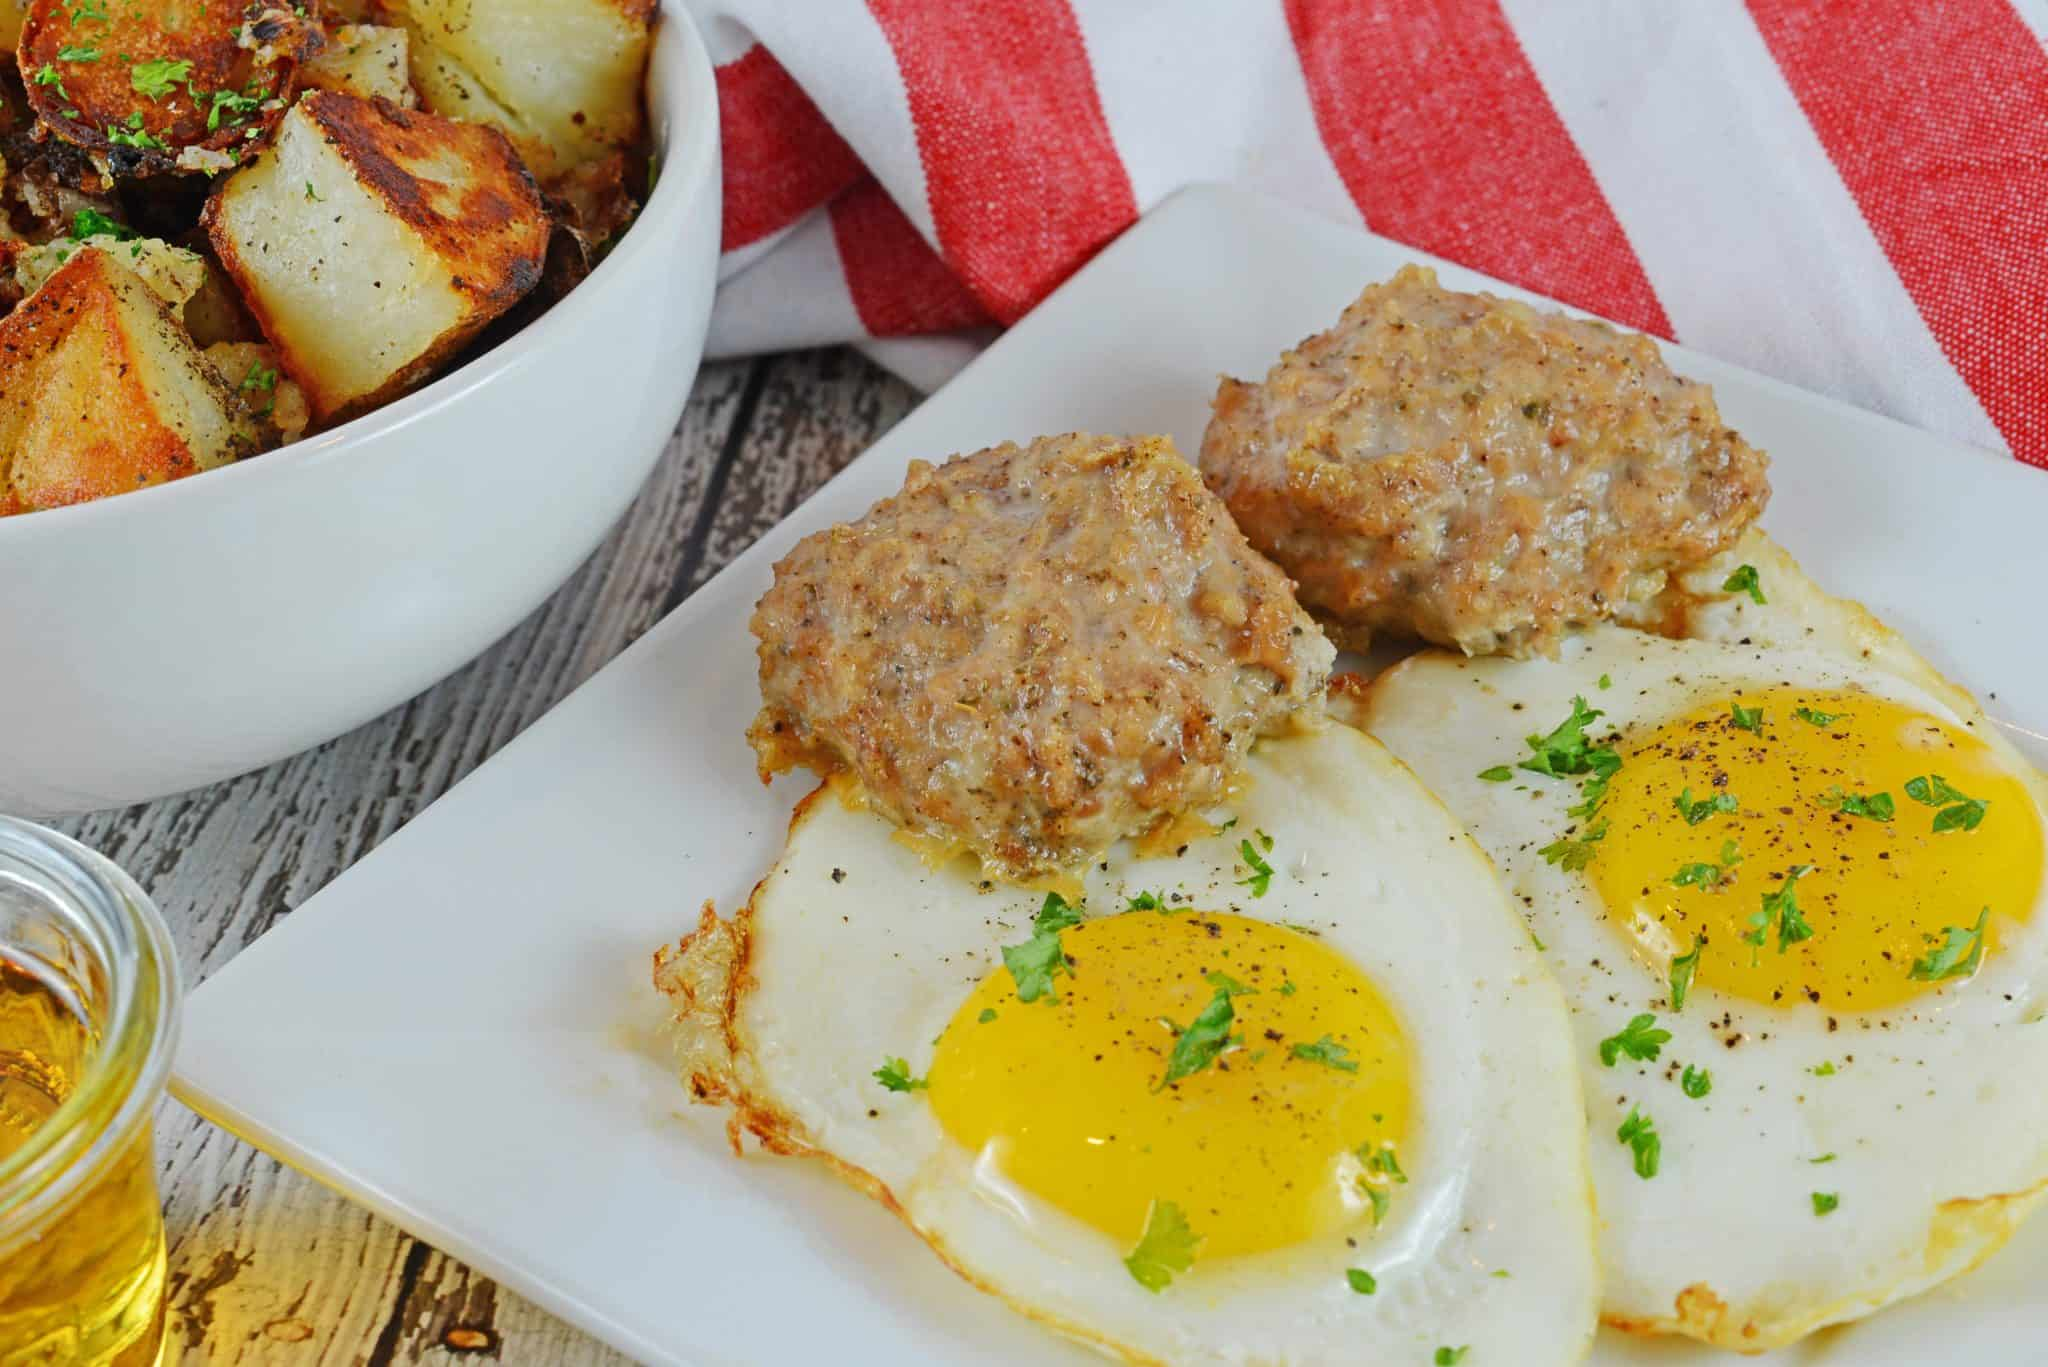 Maple Sage Chicken Sausage is an easy breakfast sausage recipe using a savory sausage spice mix. They can be made ahead of time and frozen! #homemadesausage #breakfastsausage www.savoryexperiments.com